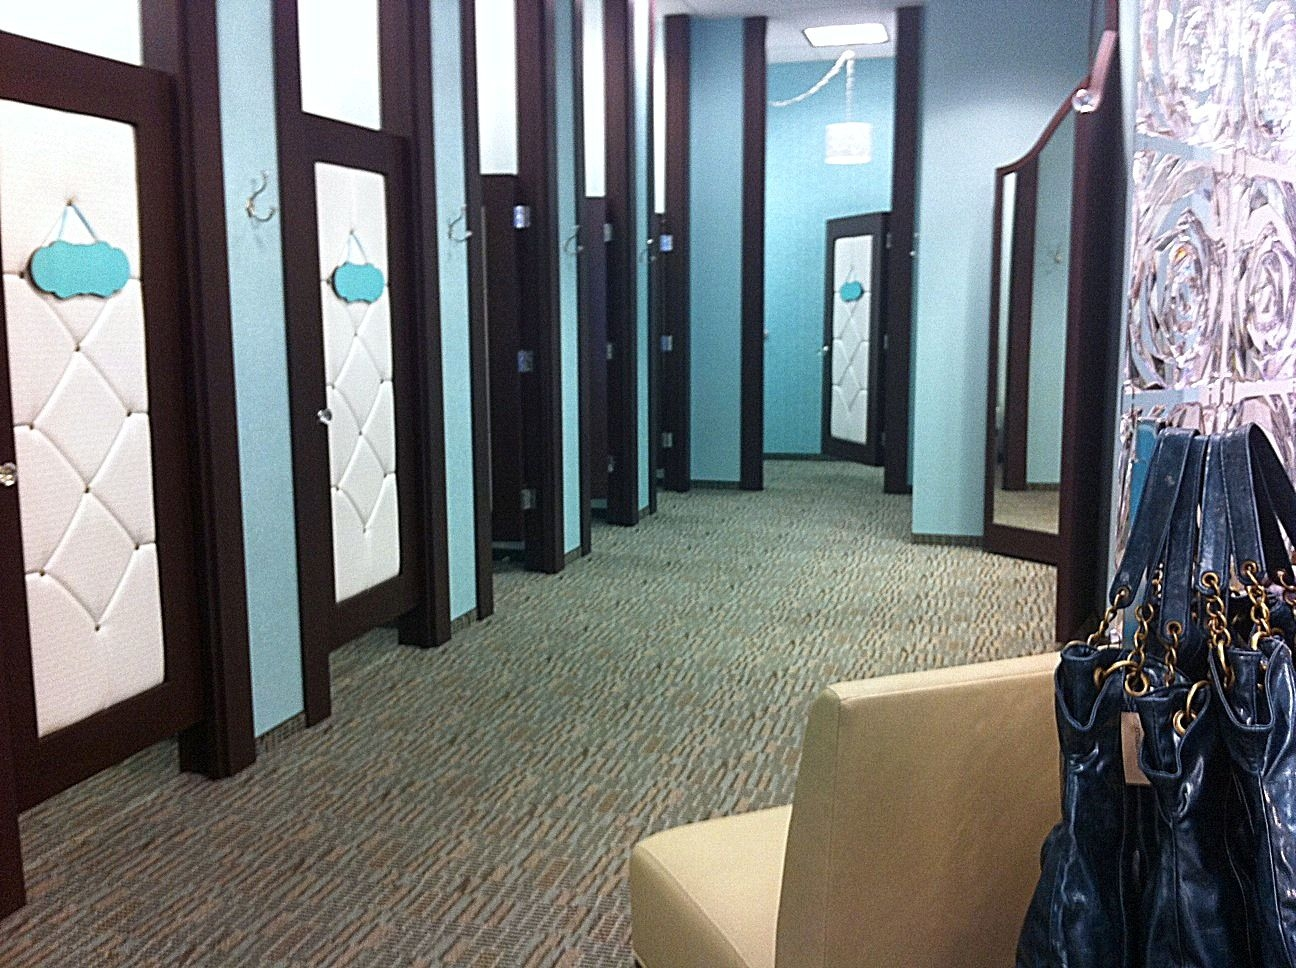 Retail Fitting Room Doors  Look at those upholstered